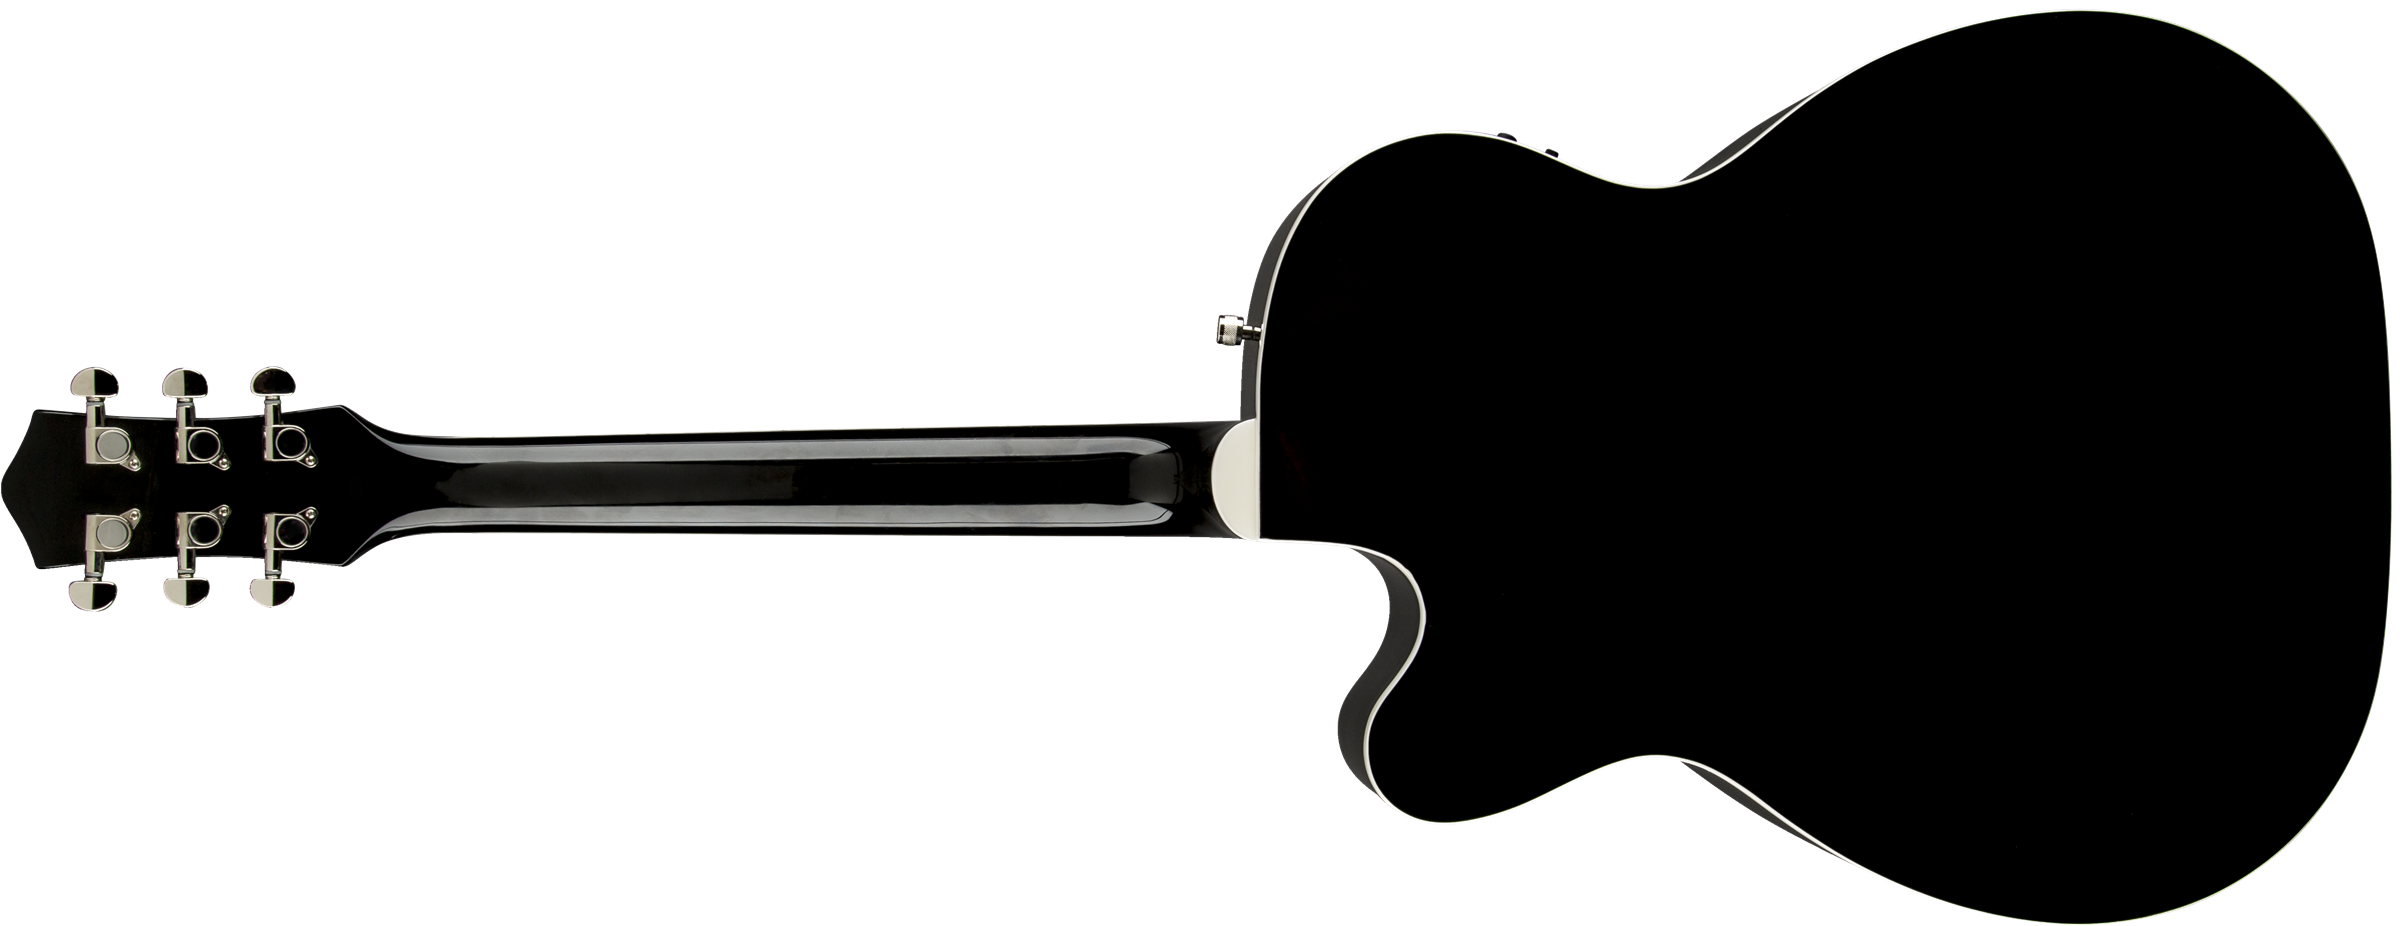 Acoustic Guitar G5013ce Rancher Jr Cutaway Electric Pickup On An Bass Or Fishman System Black